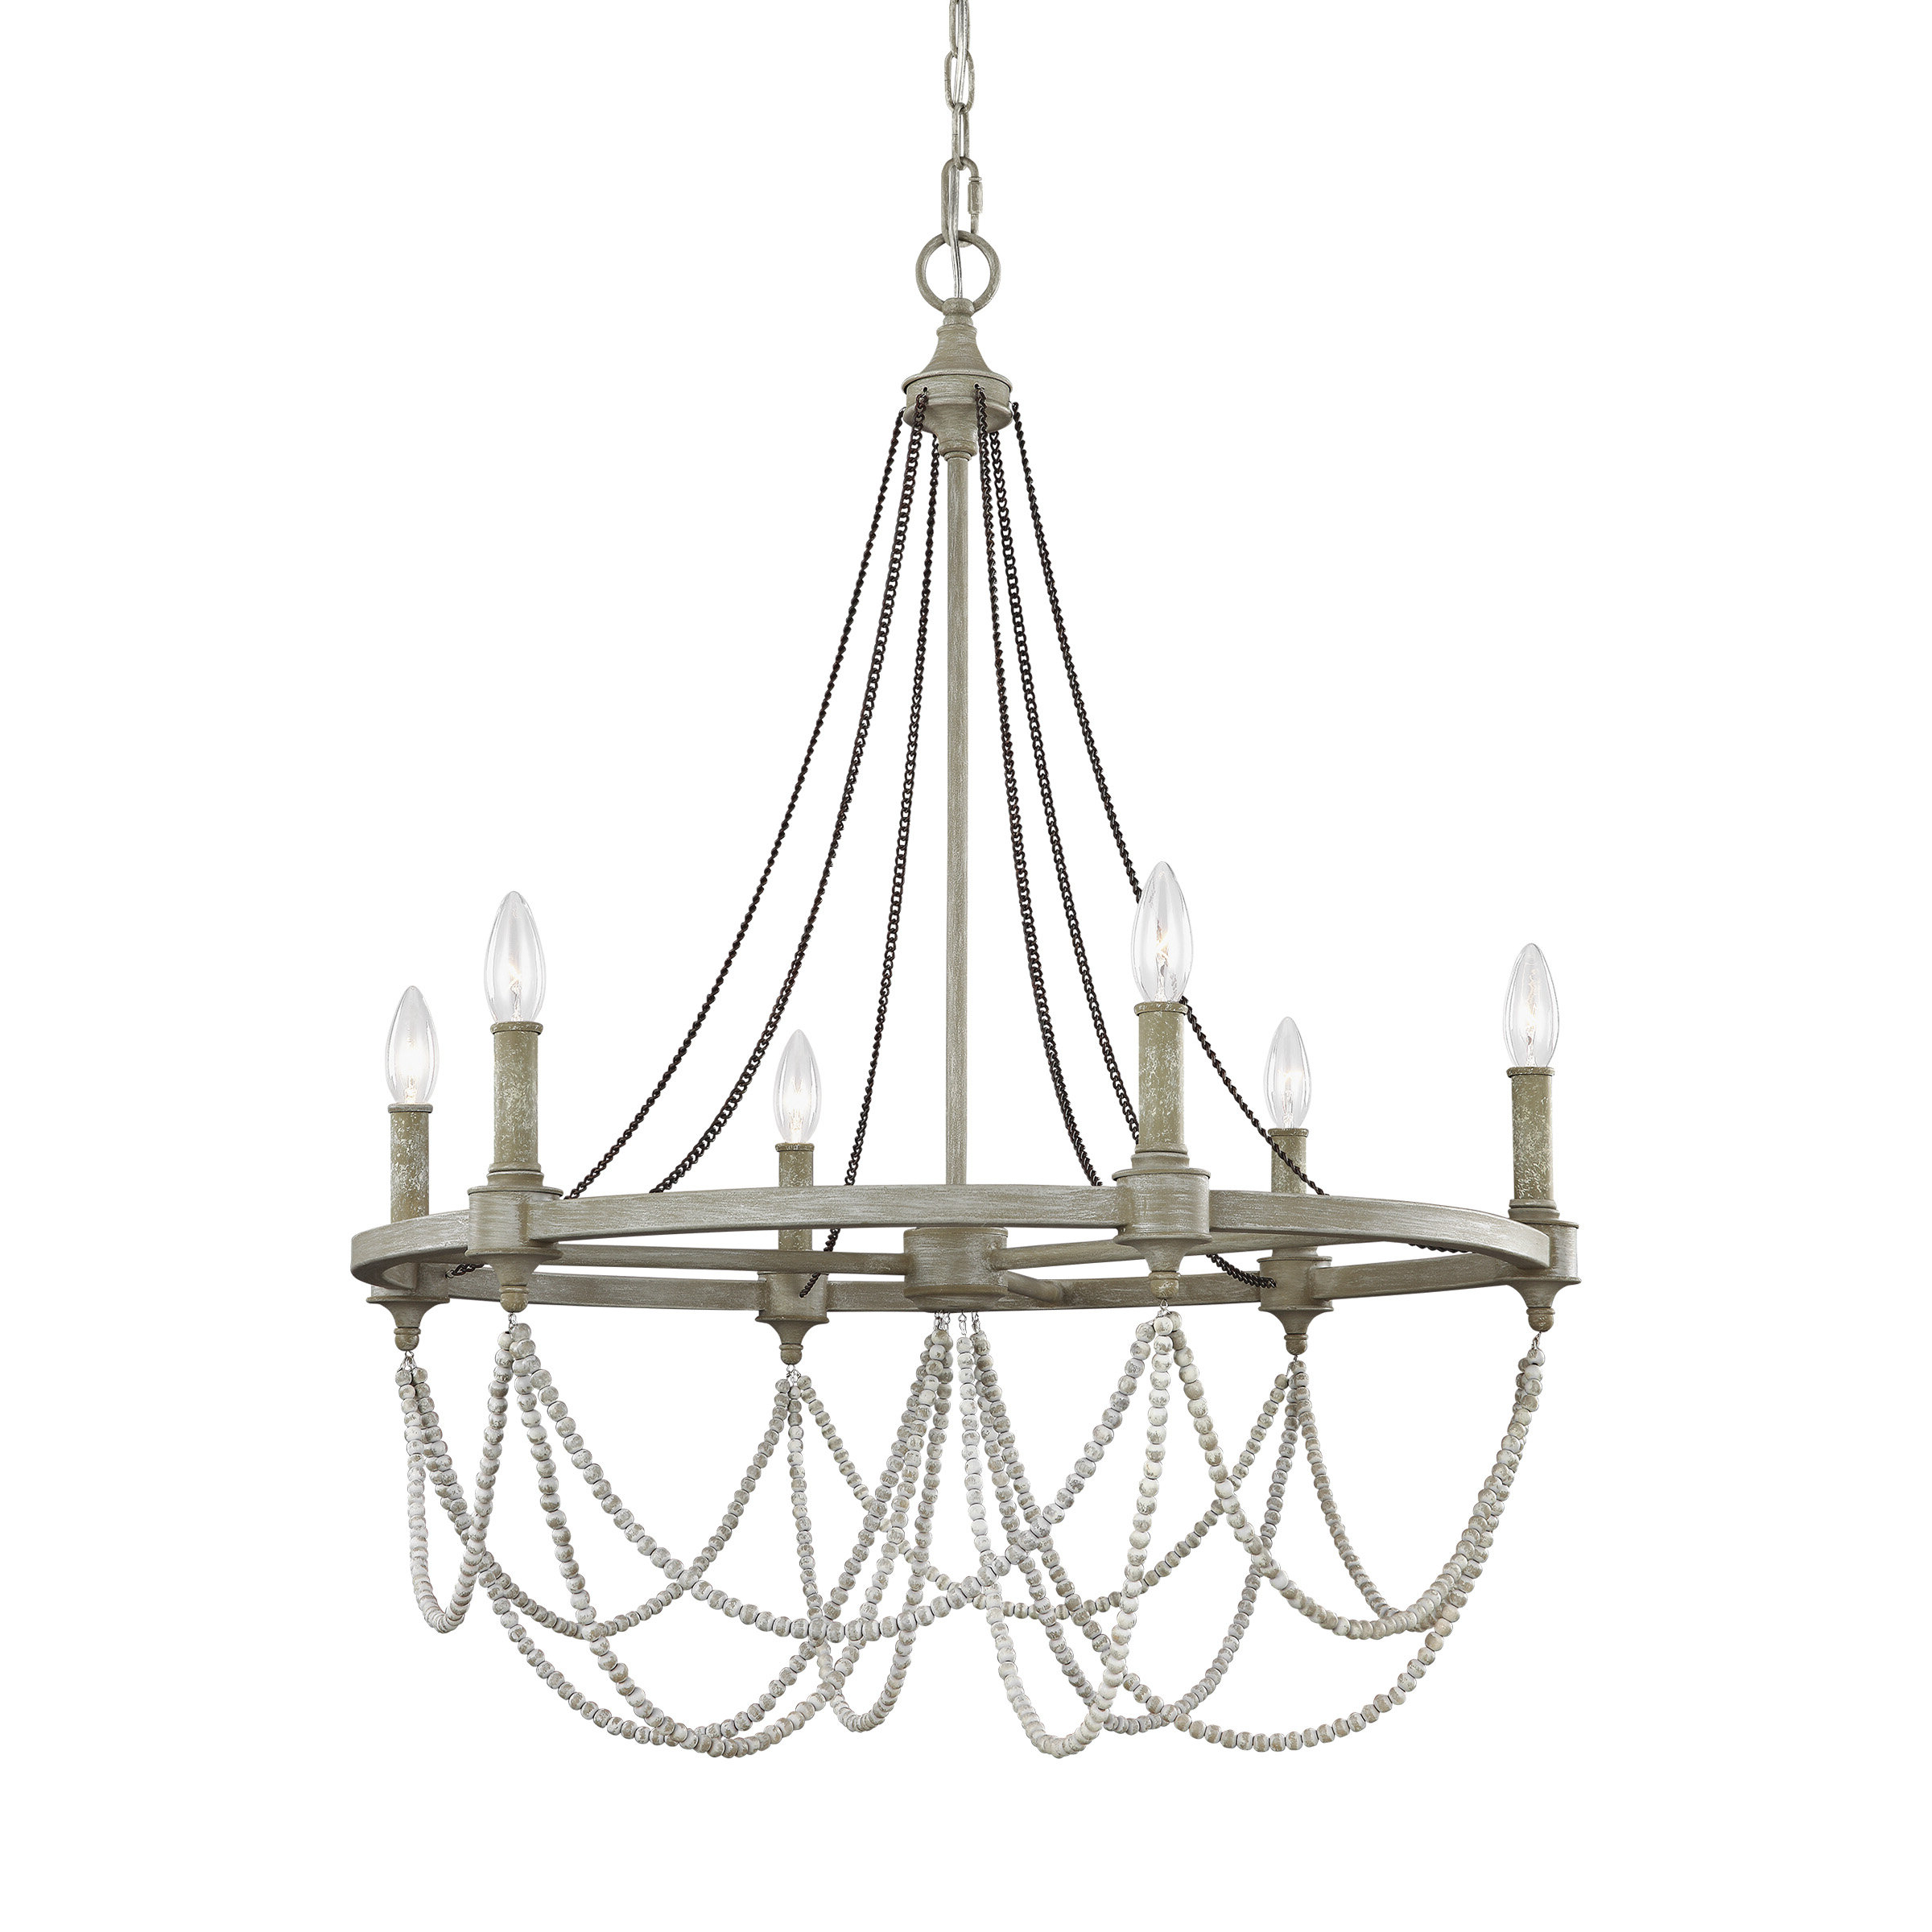 Fitzgibbon 6 Light Candle Style Chandelier With Regard To Most Popular Watford 9 Light Candle Style Chandeliers (View 13 of 25)